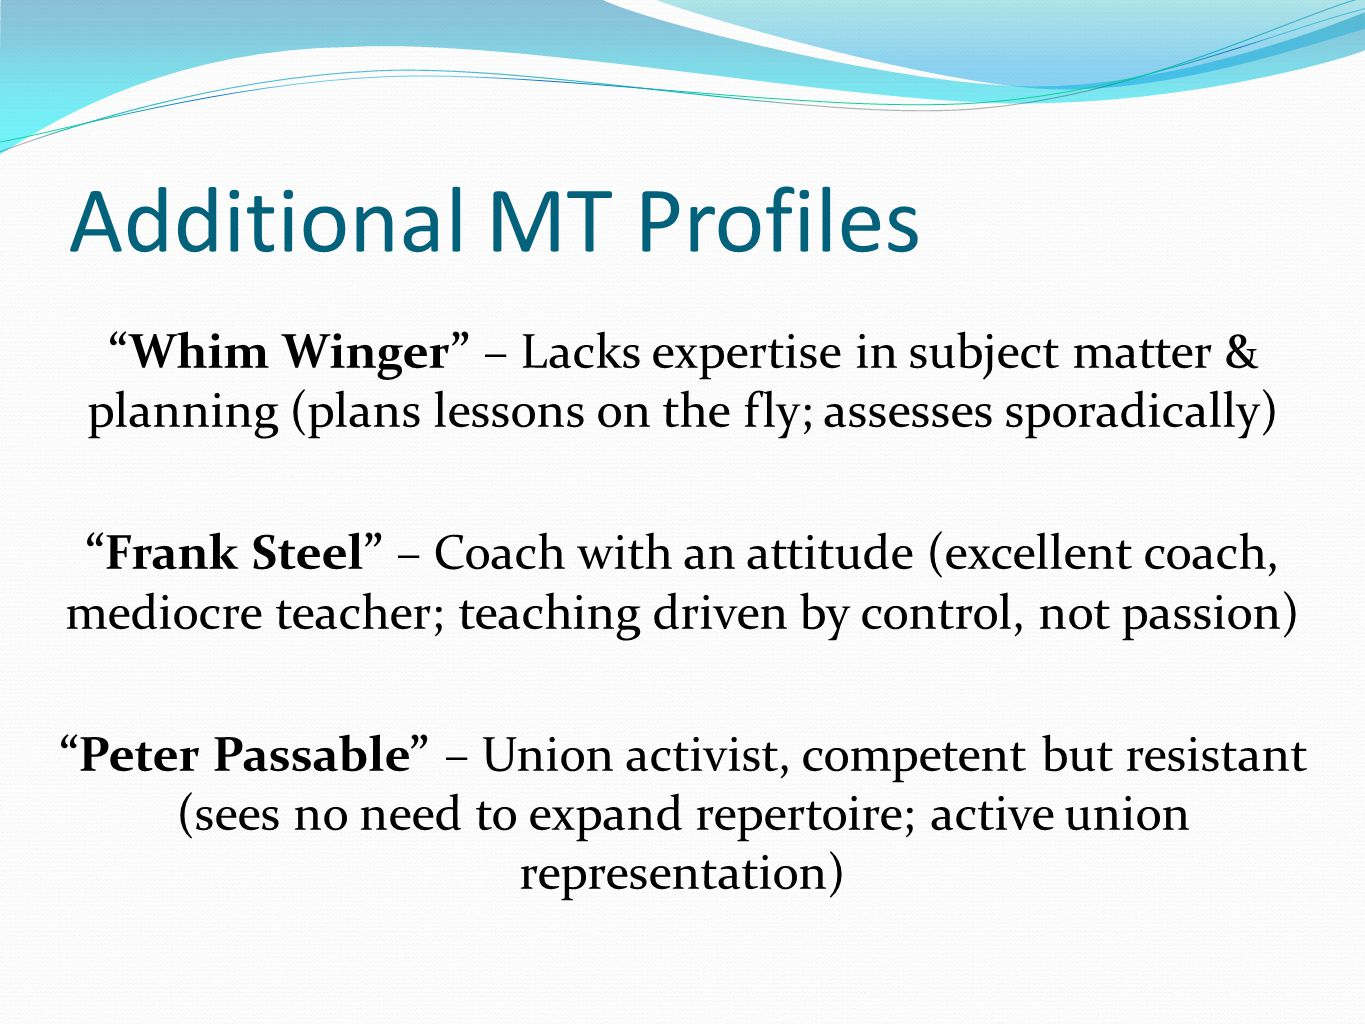 Additional MT Profiles Whim Winger – Lacks expertise in subject matter & planning (plans lessons on the fly; assesses sporadically) Frank Steel – Coach with an attitude (excellent coach, mediocre teacher; teaching driven by control, not passion) Peter Passable – Union activist, competent but resistant (sees no need to expand repertoire; active union representation)